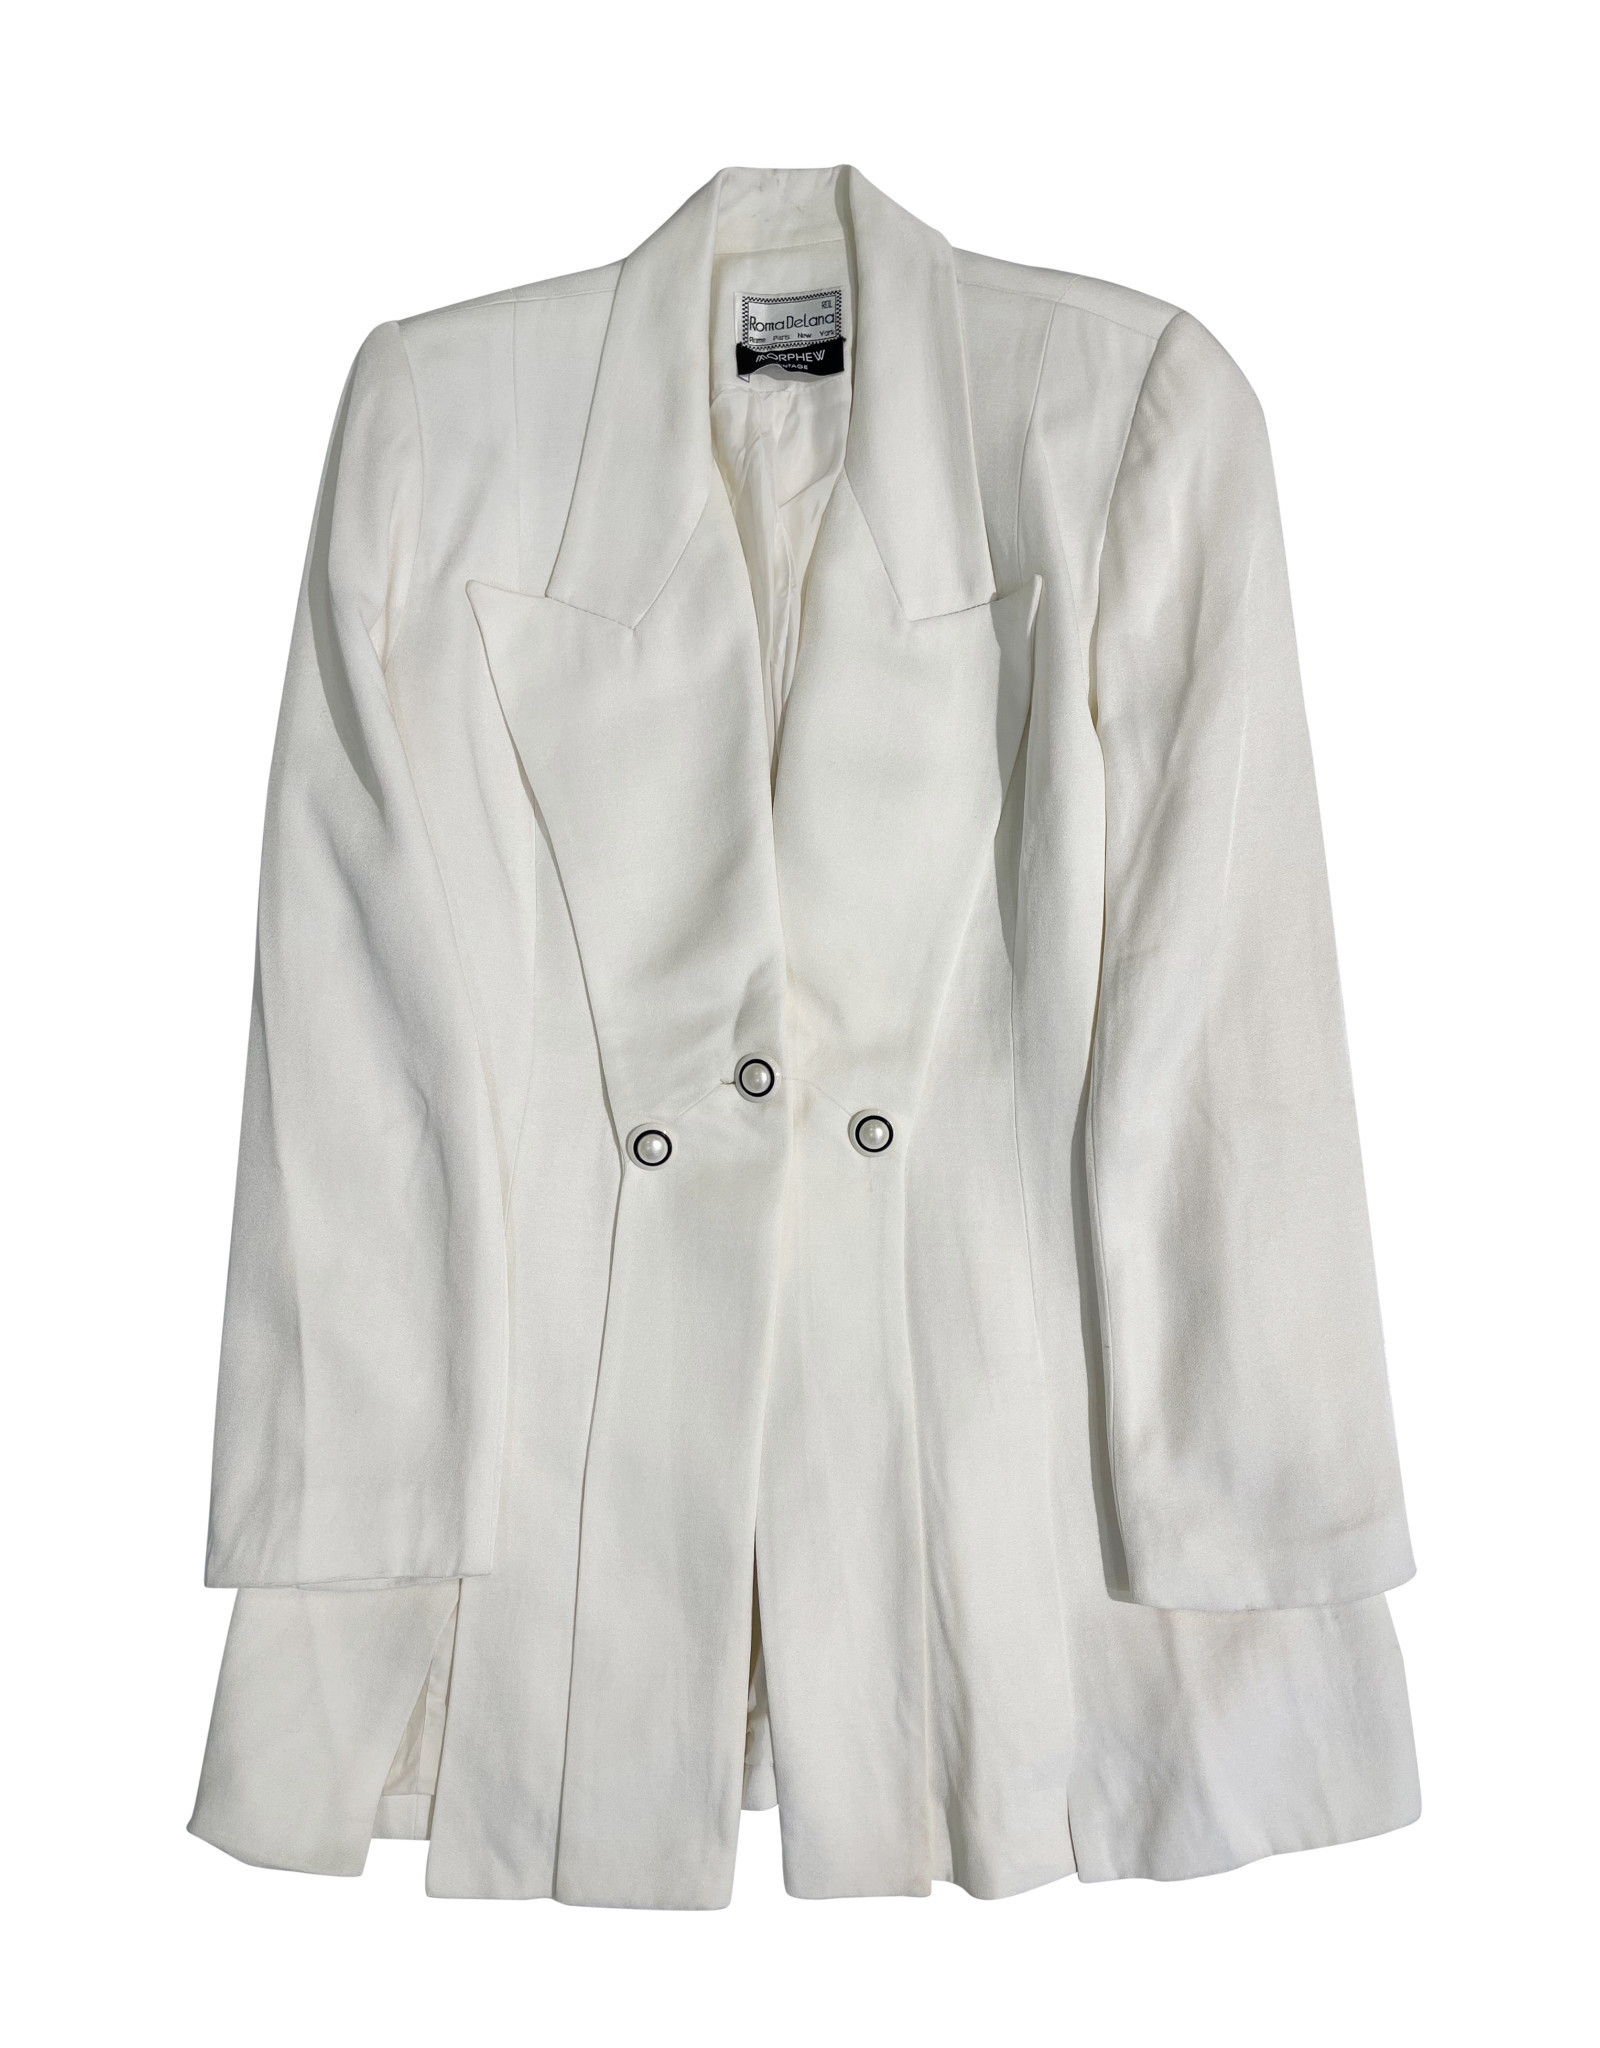 Wyld Blue Vintage Ivory Peak Lapel Blazer with Pearl Buttons (1990s)